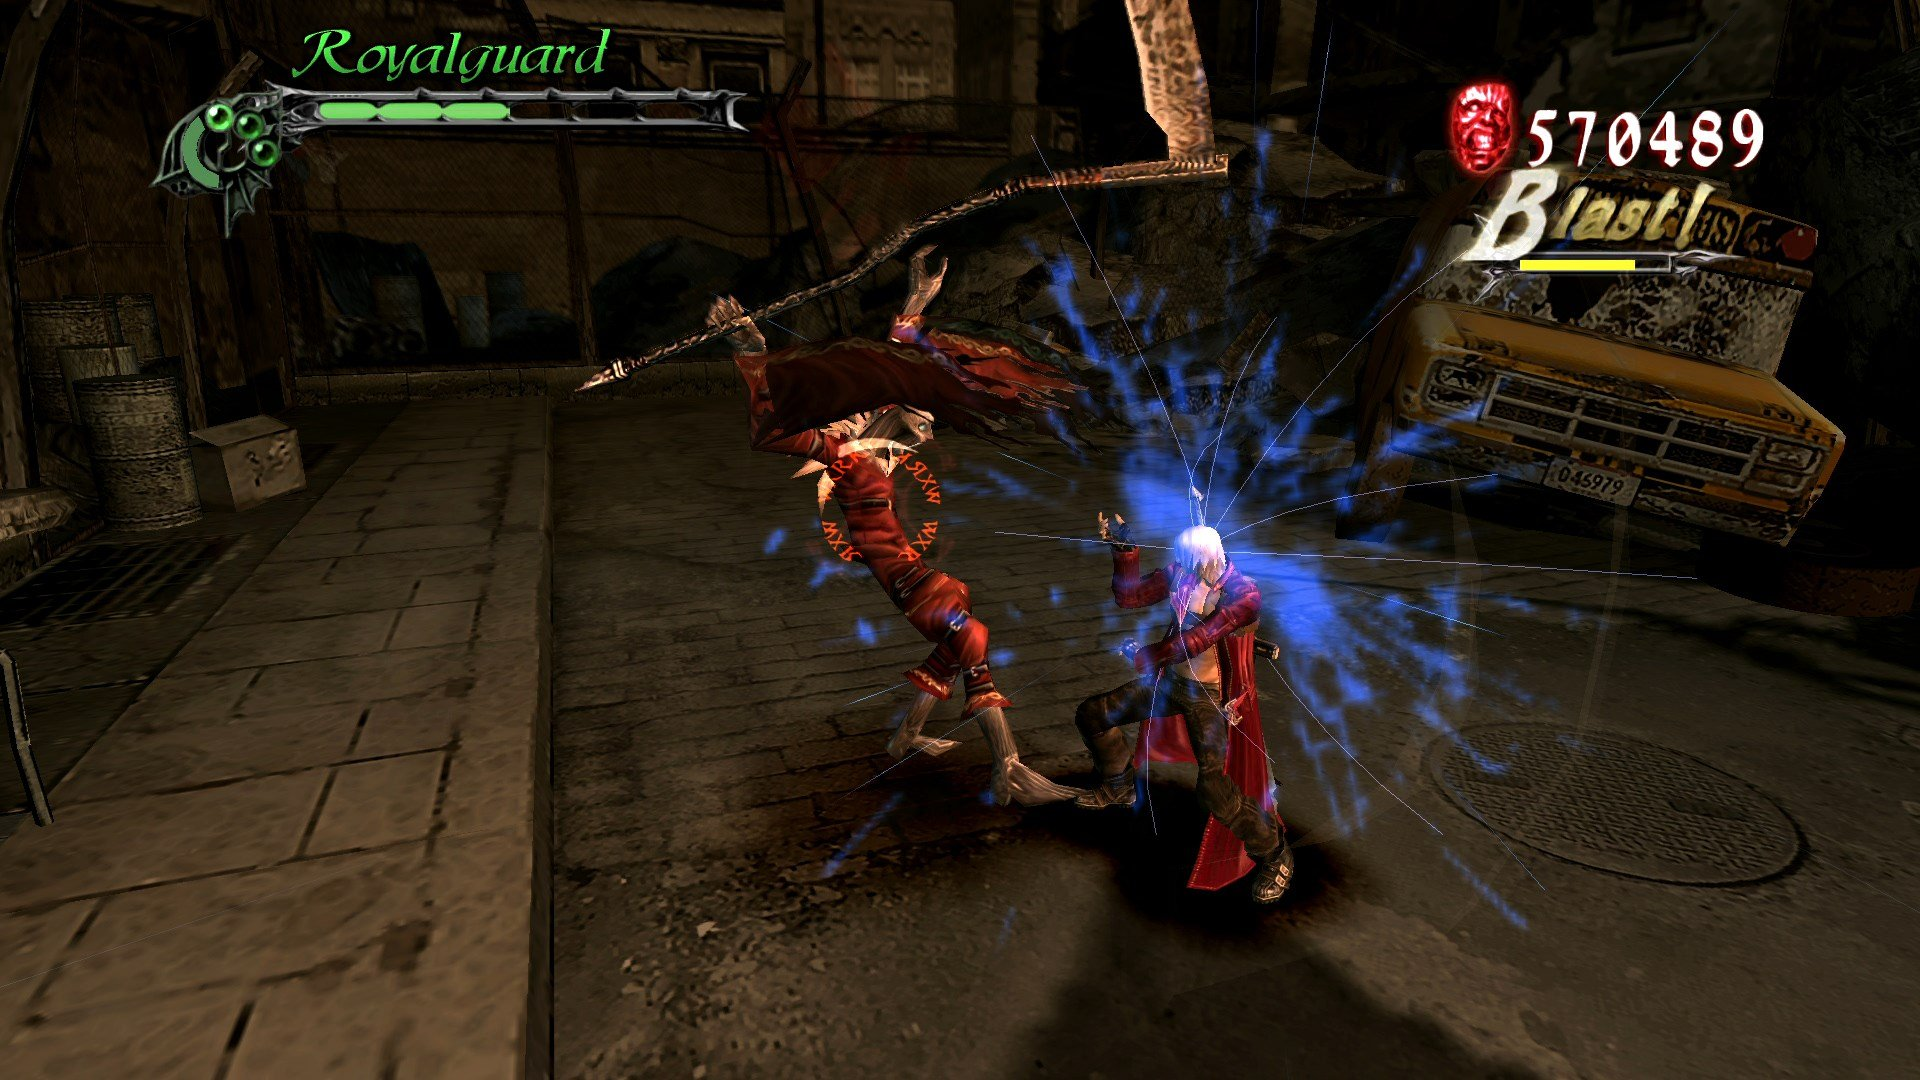 Devil May Cry 3 continues its reign as the best Devil May Cry to date on Switch